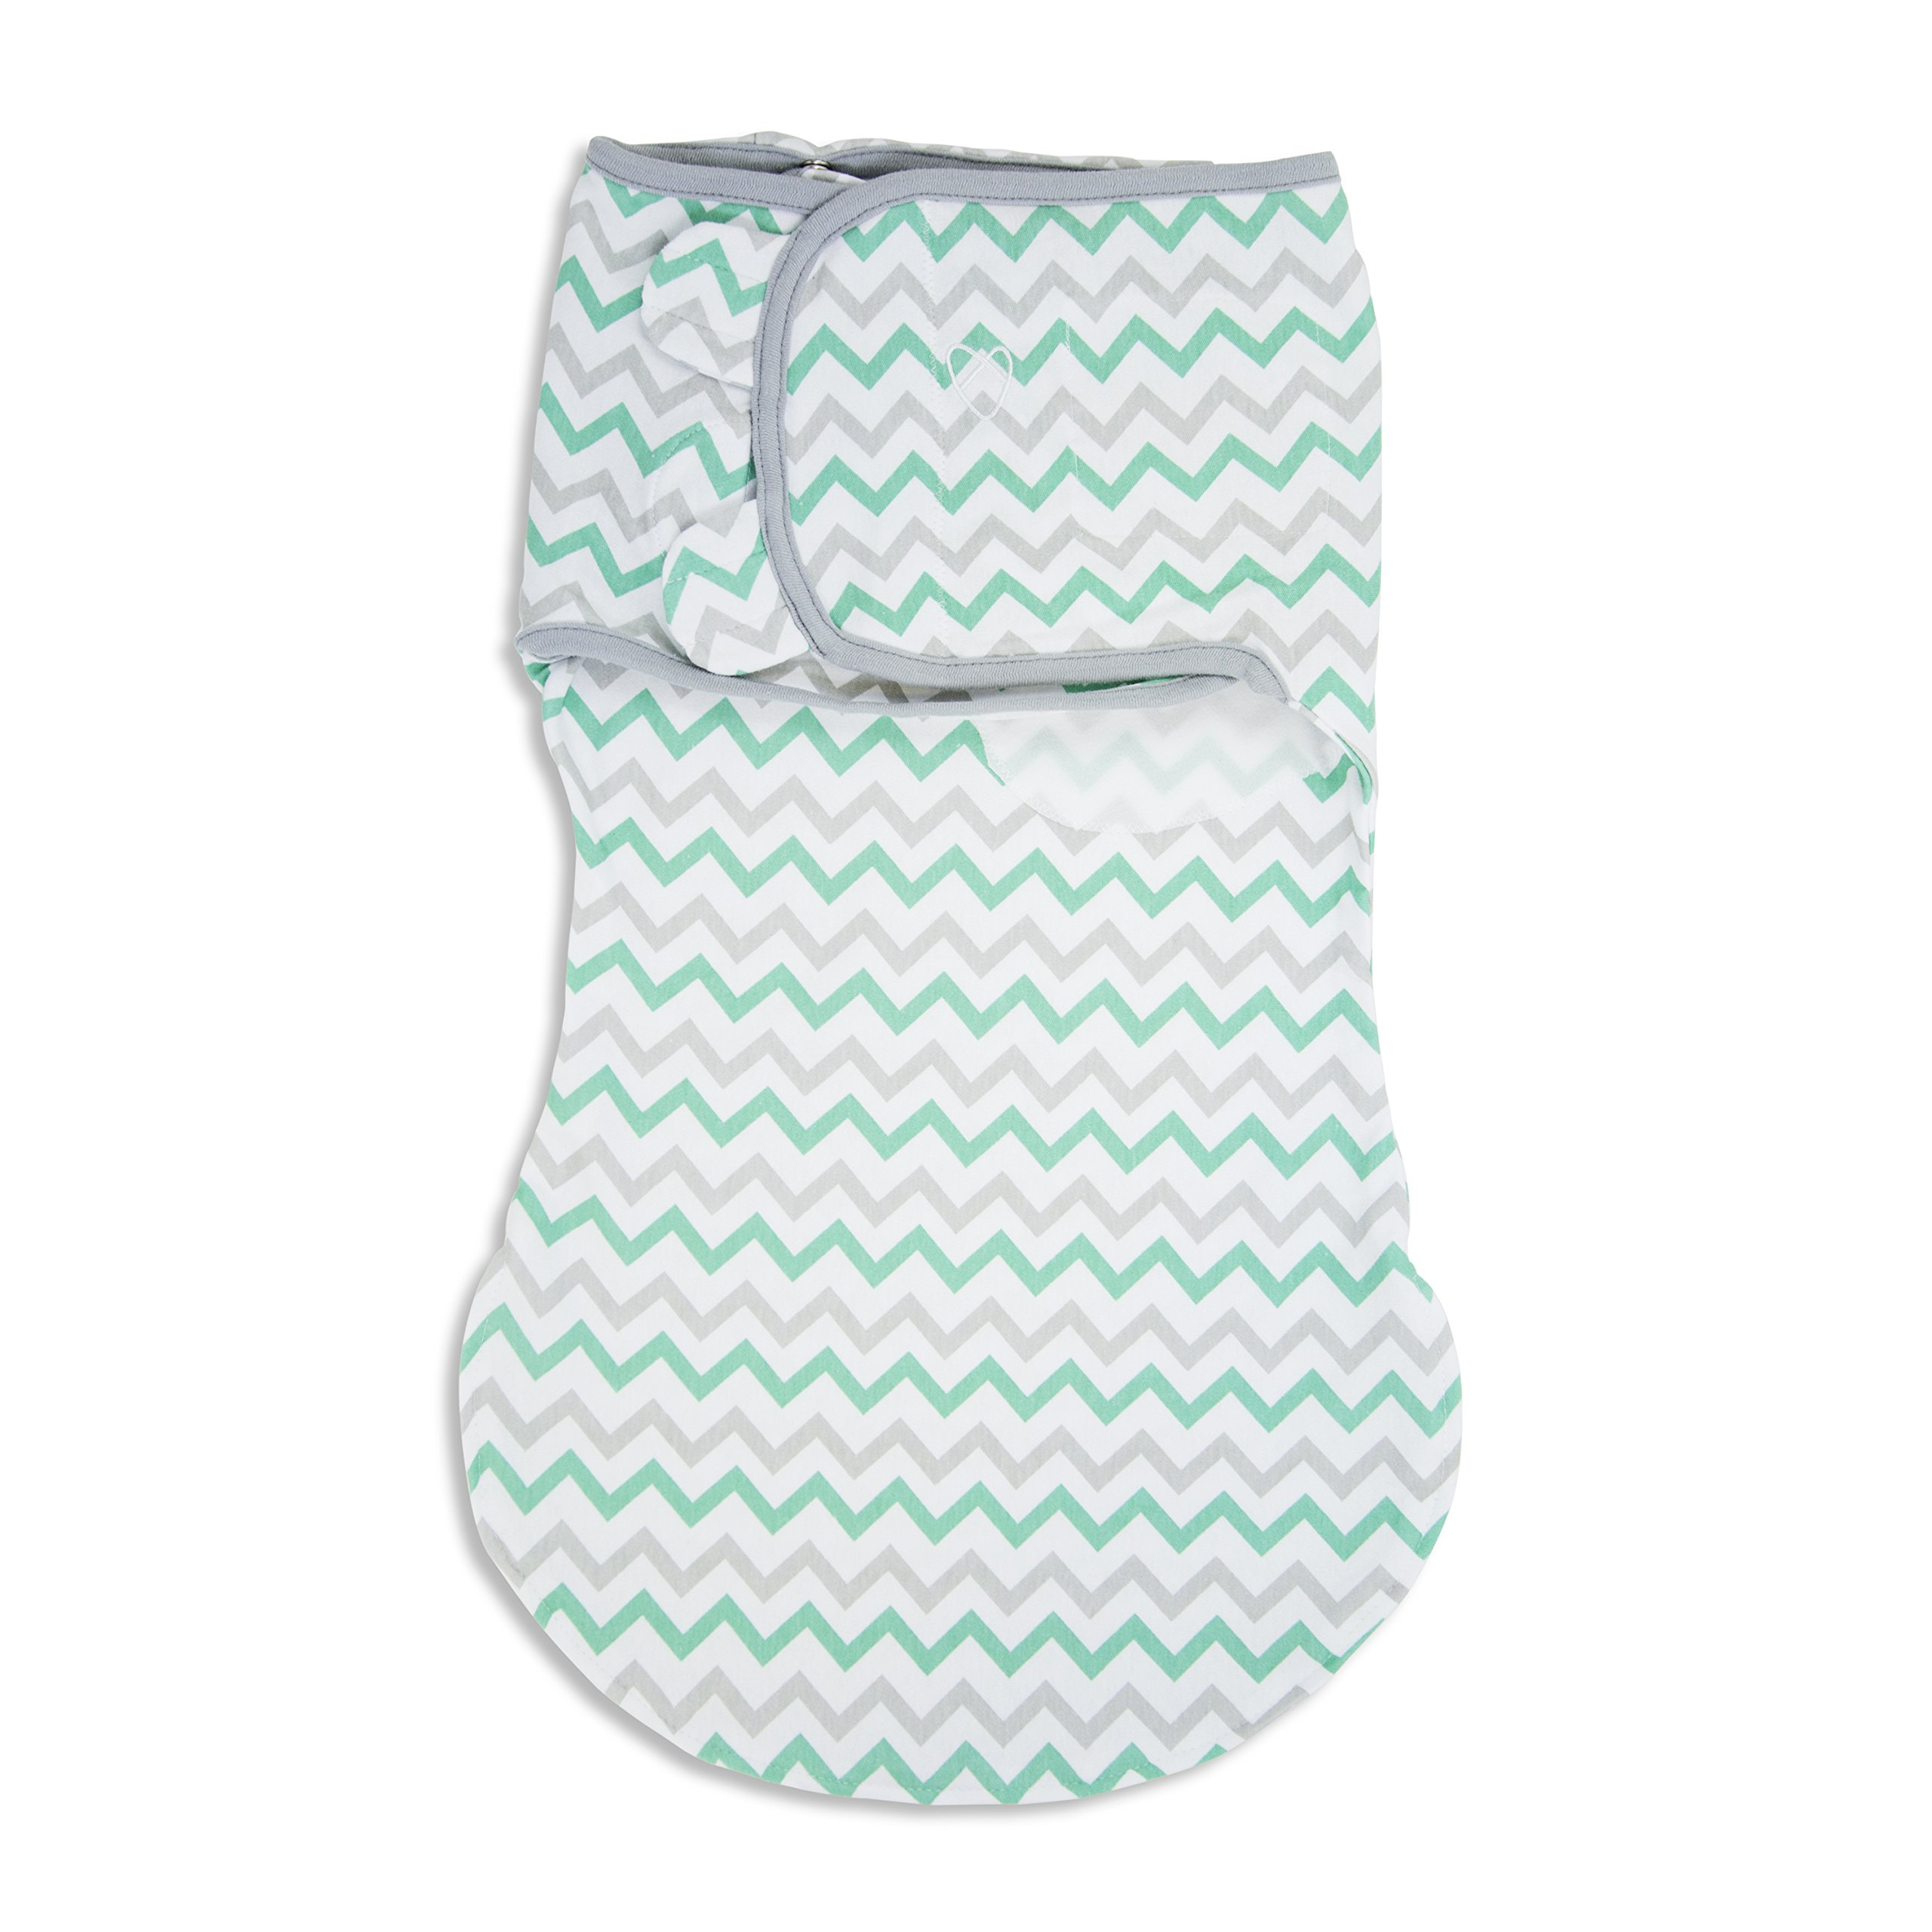 SwaddleMe WrapSack 1-PK, Teal Grey Chevron (LG)